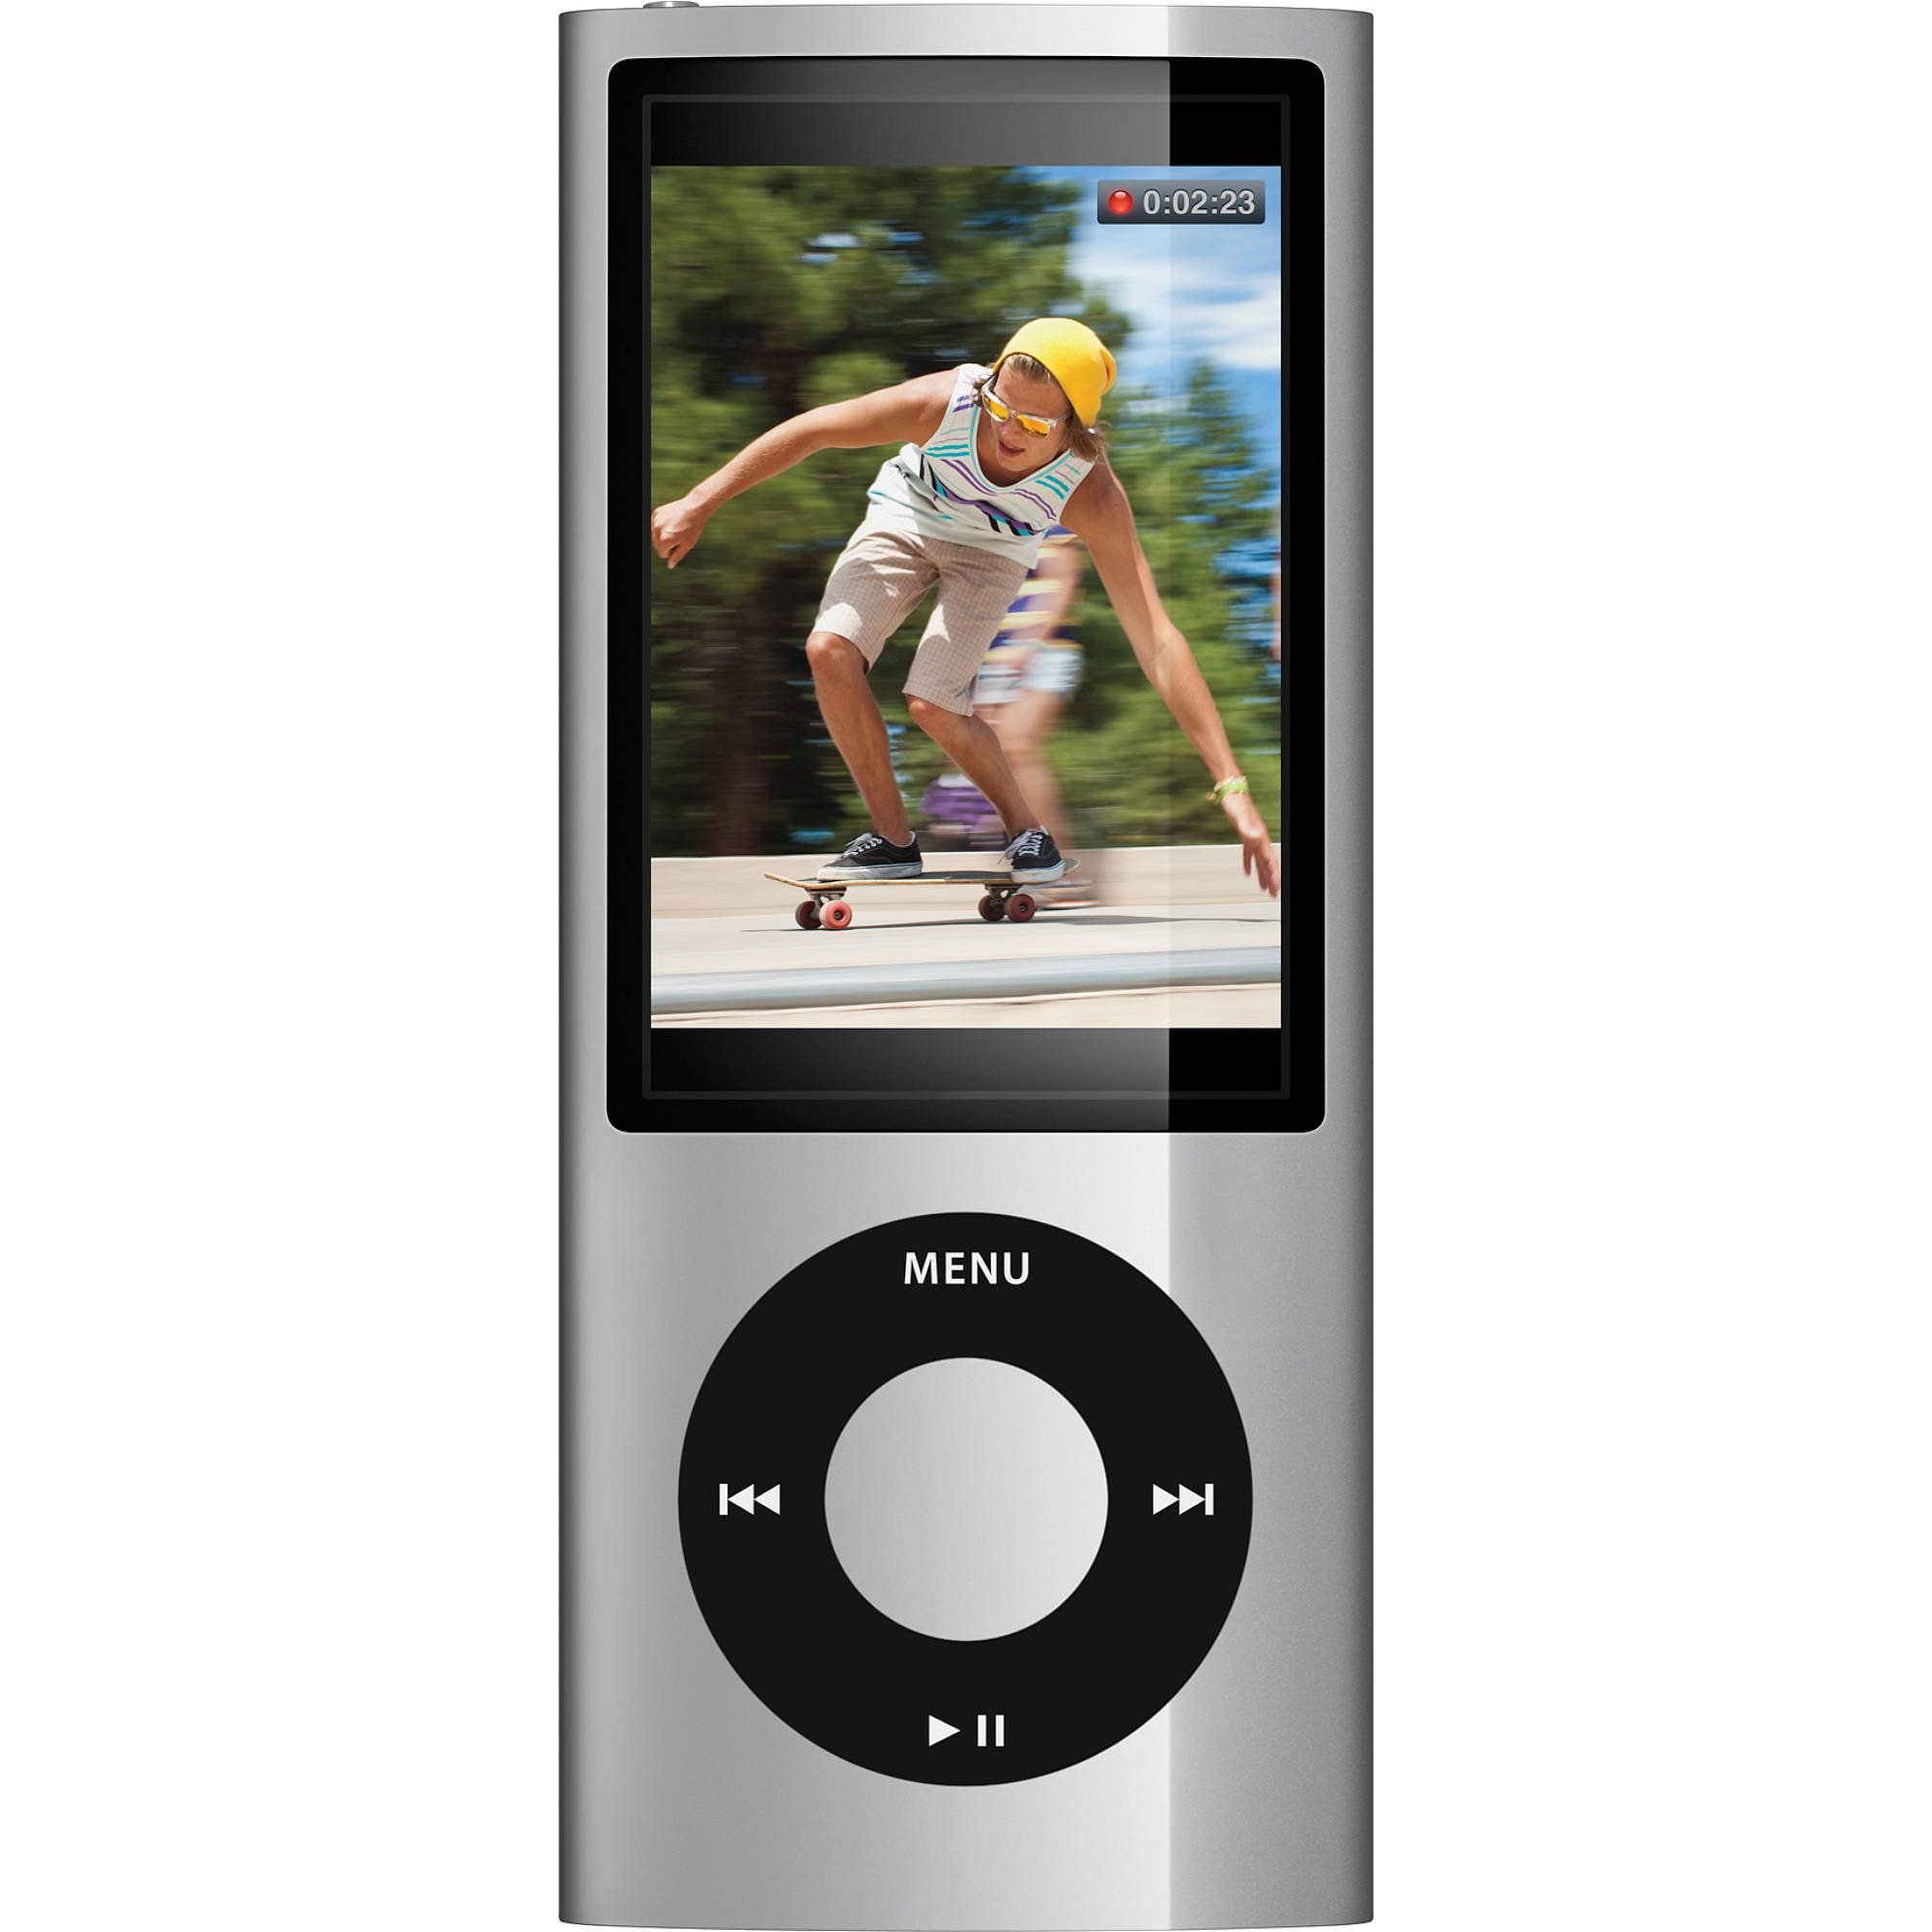 new invention ipod camera video Technology inventions timeline created by 15hogc1 mar 1, 2000  a website invented to broad cast any videos, music, cartoons, dramas, or movies worldwide  besides from listening music, you can play or use apps at the same time, and earphones can be plugged in to the ipod as well period: jan 1, 1999 to sep 15, 2011.